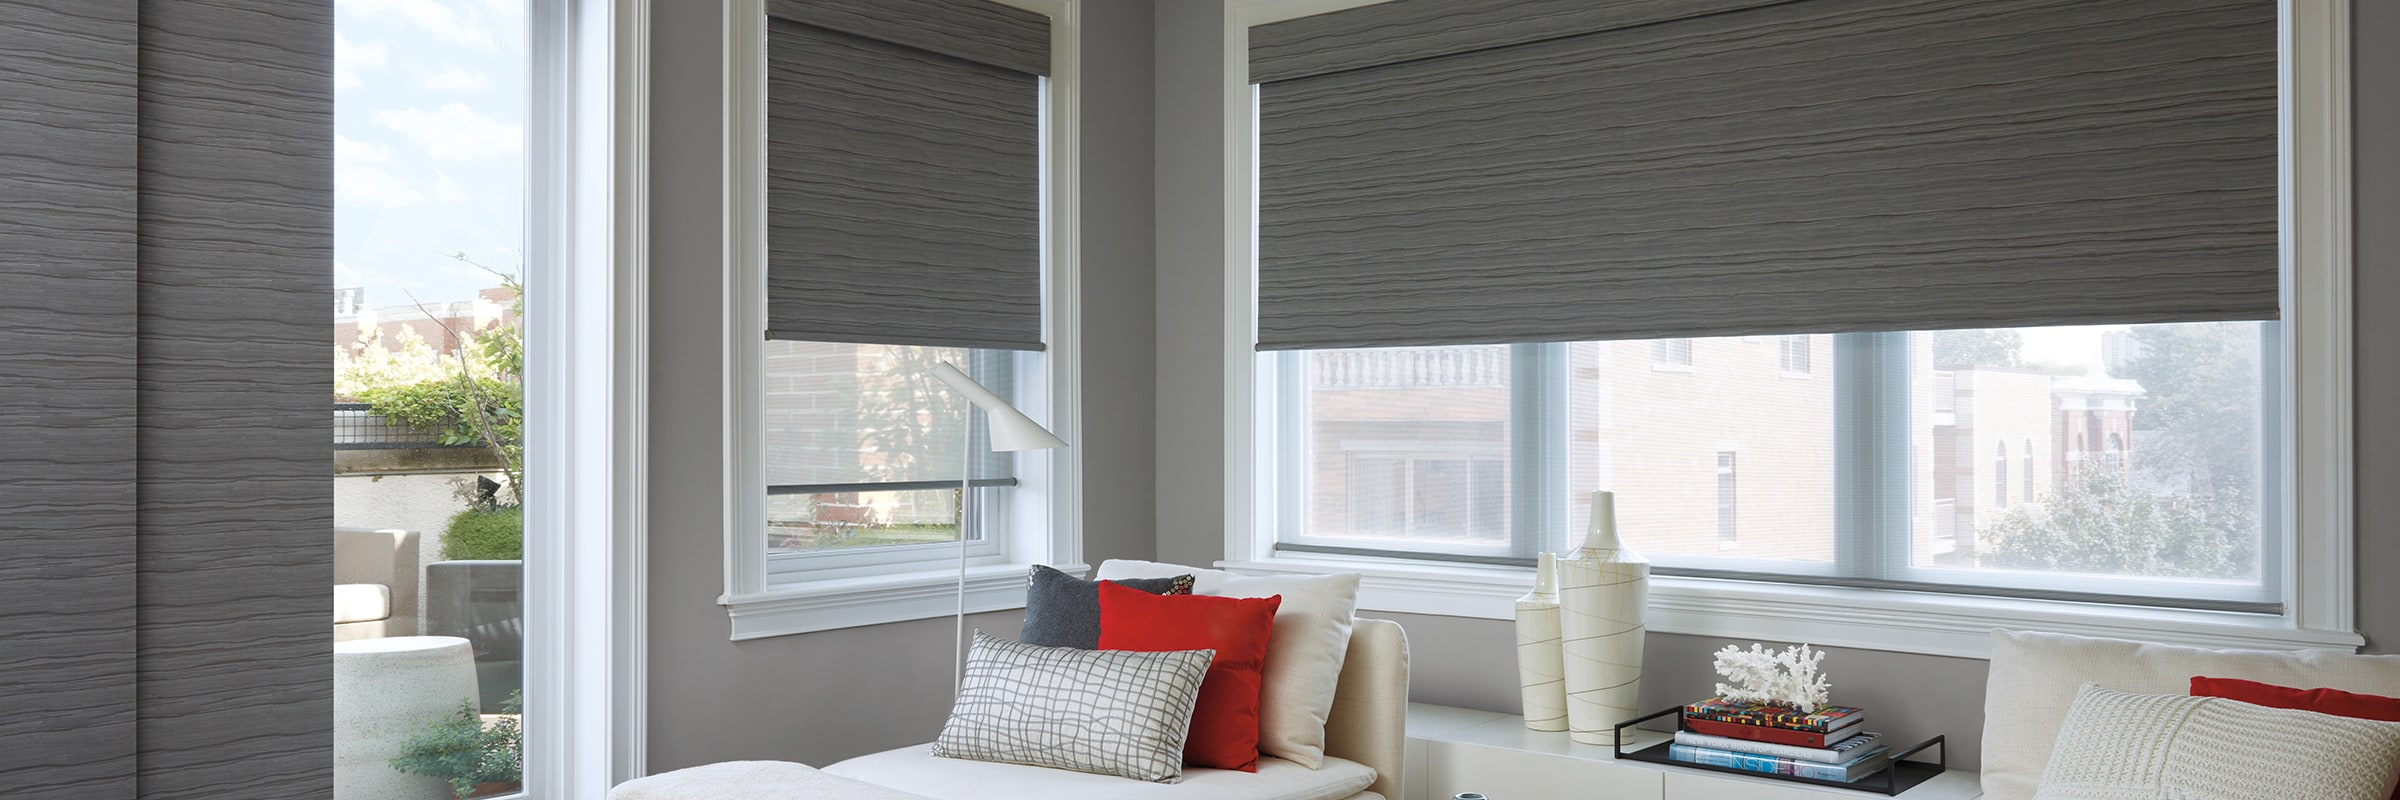 news hunter window douglas dressed blinds douglass the well coverings superior automated